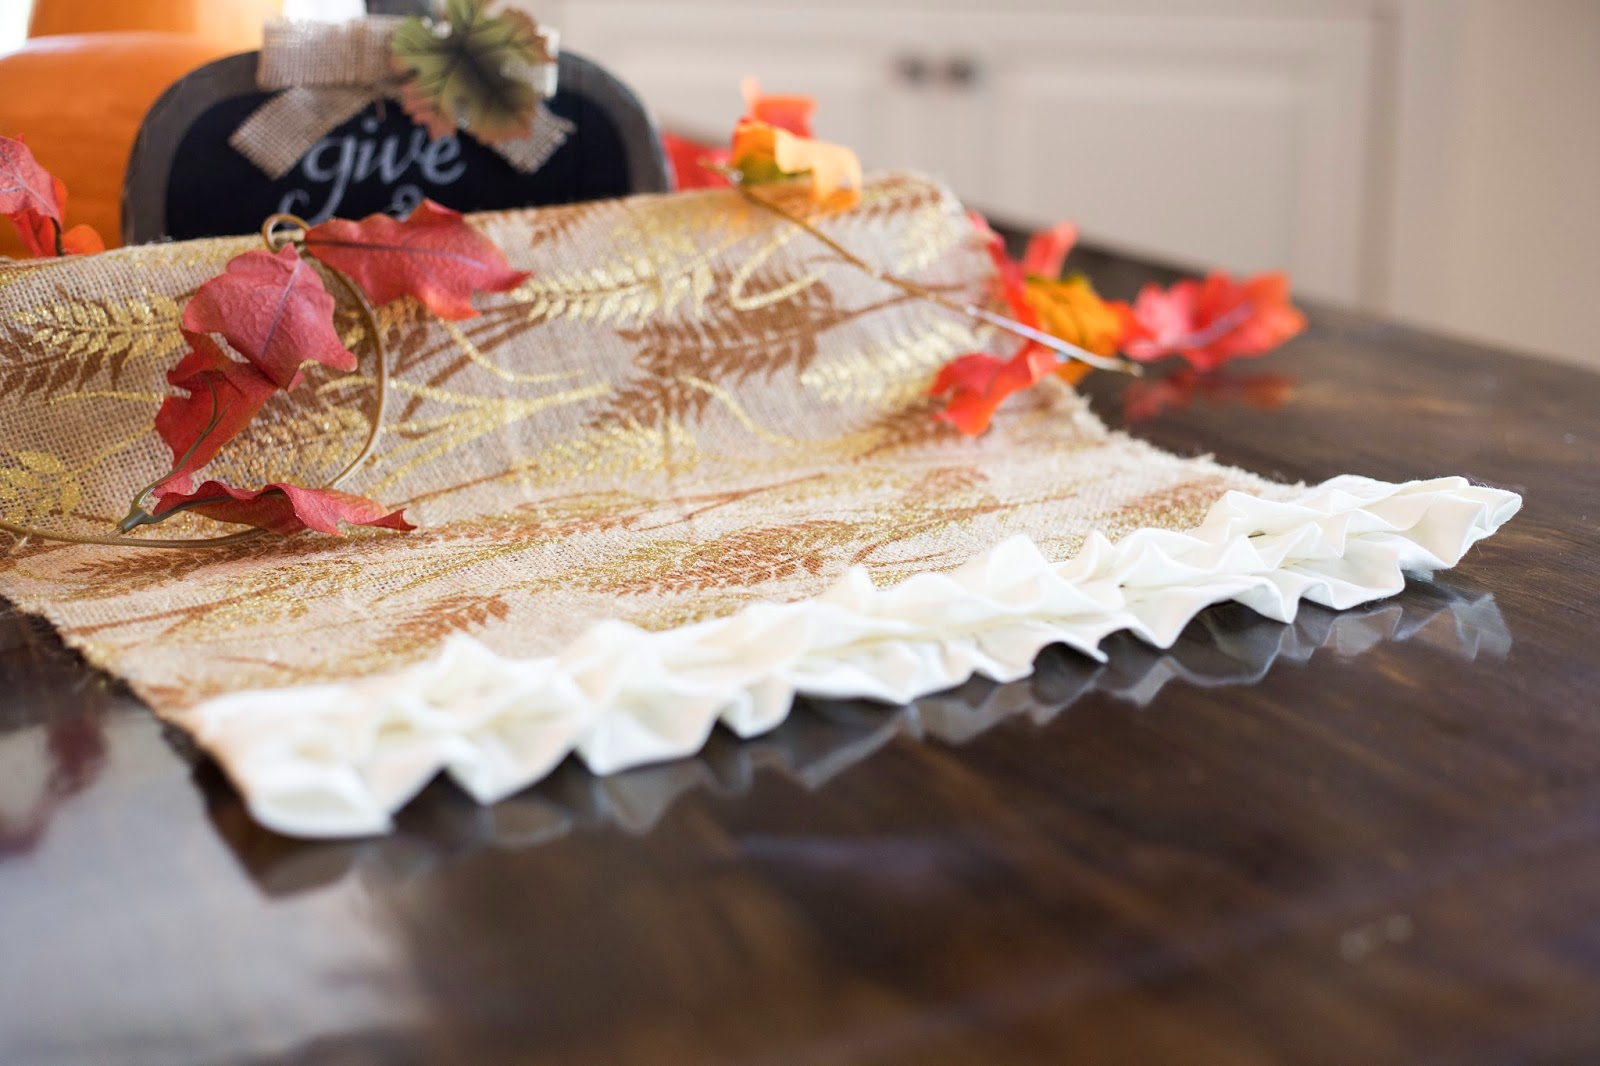 Do it yourself divas diy no sew thanksgiving burlap table runner be sure to follow us on instagram for more fun diy projects diydivas2 heres what i did solutioingenieria Image collections